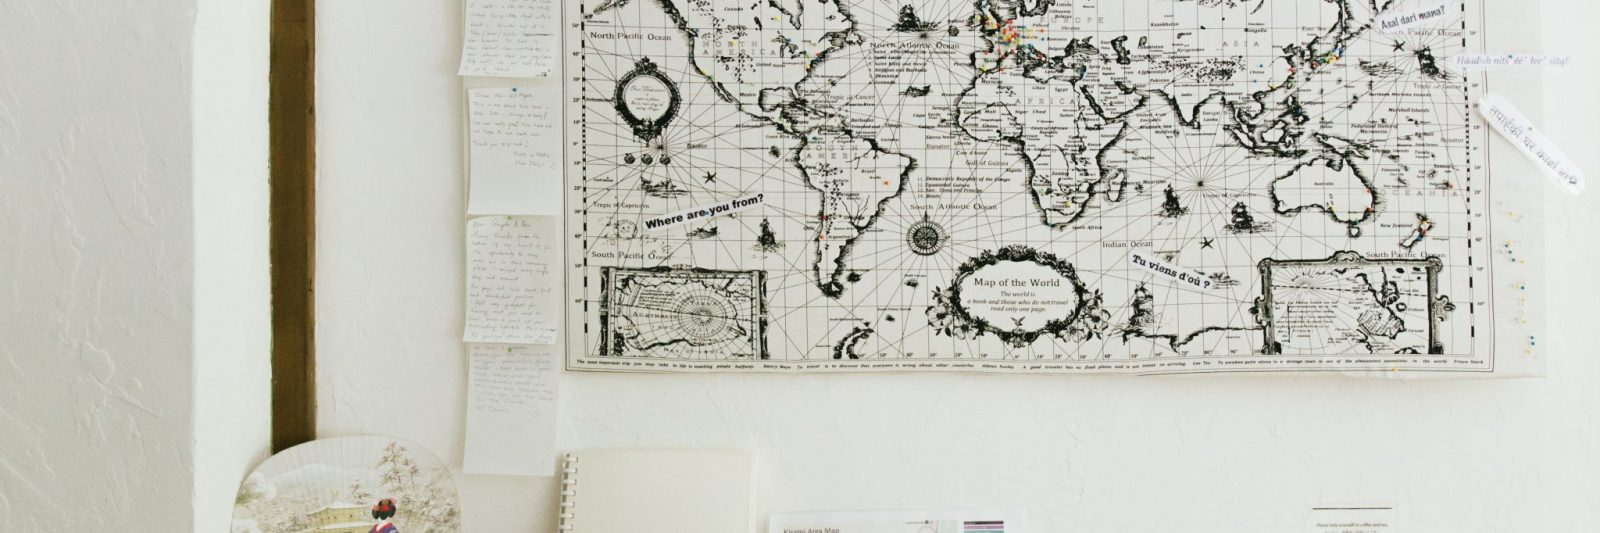 """Make your mark on the """"where are you from?"""" map in the kitchen at Retreat wabi-sabi"""